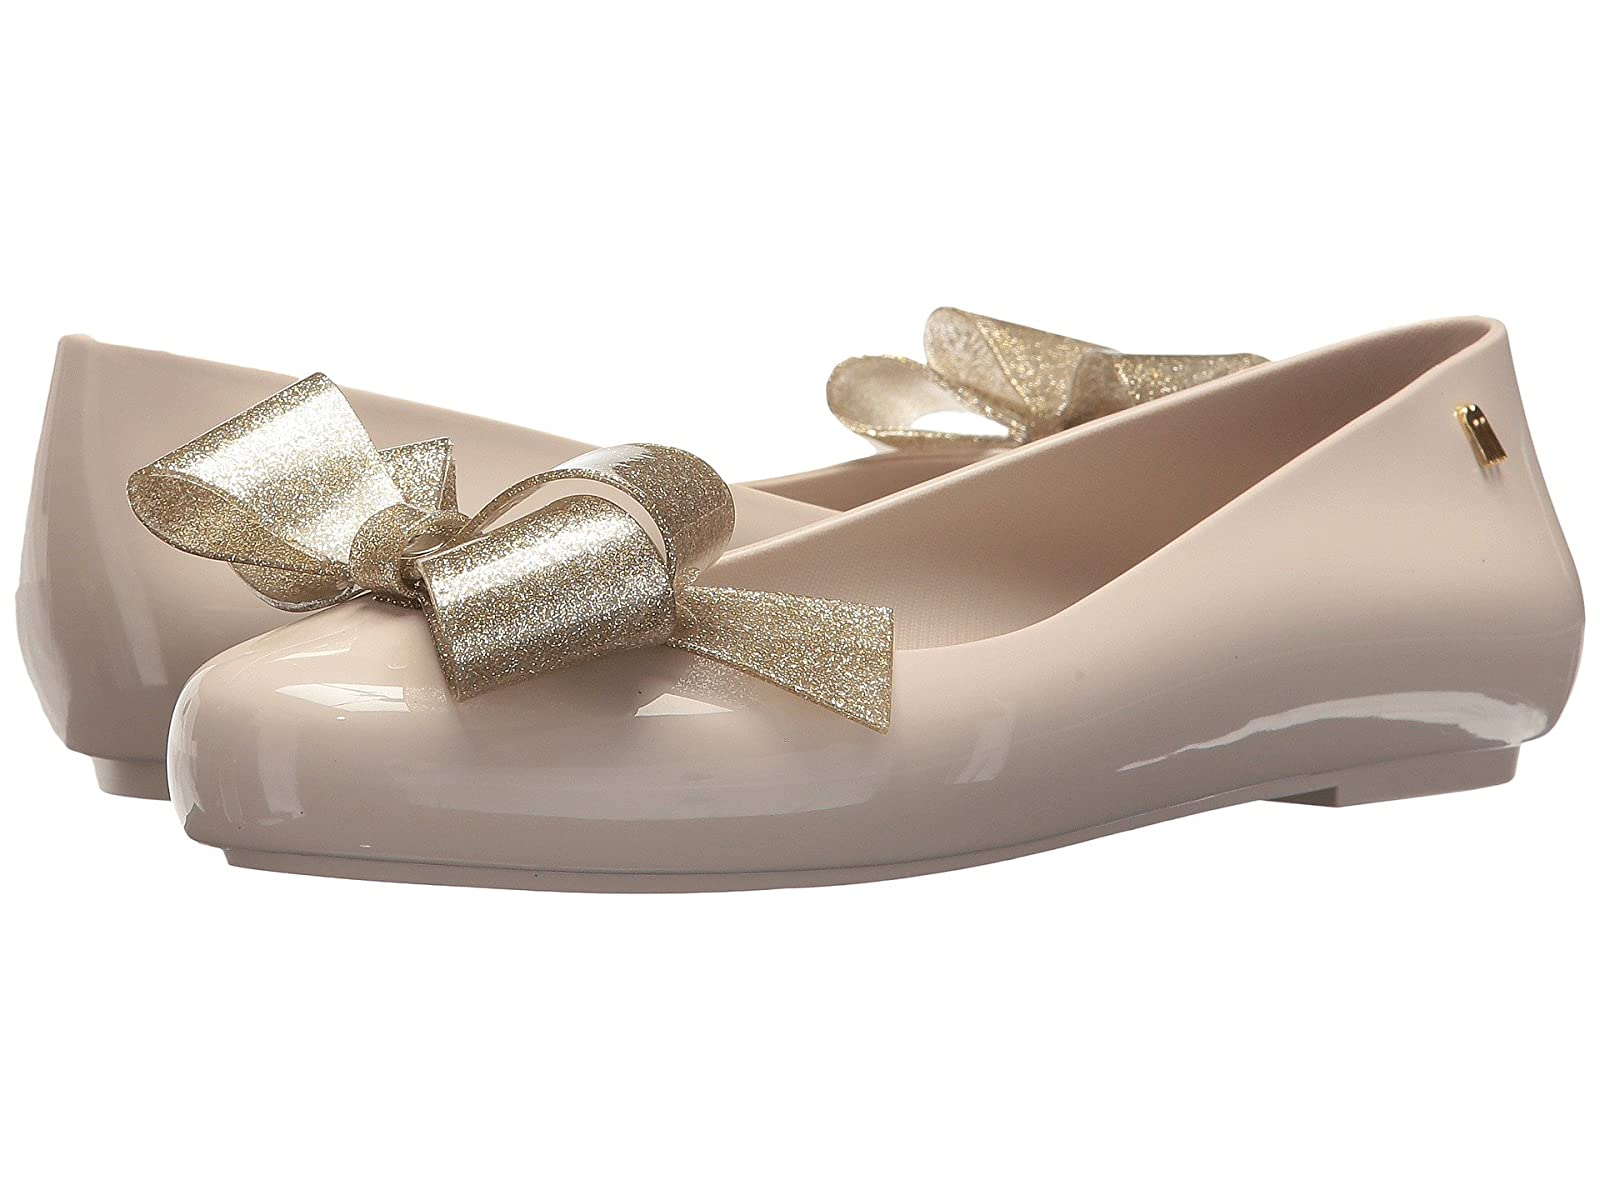 Melissa Shoes Space Love IVCheap and distinctive eye-catching shoes